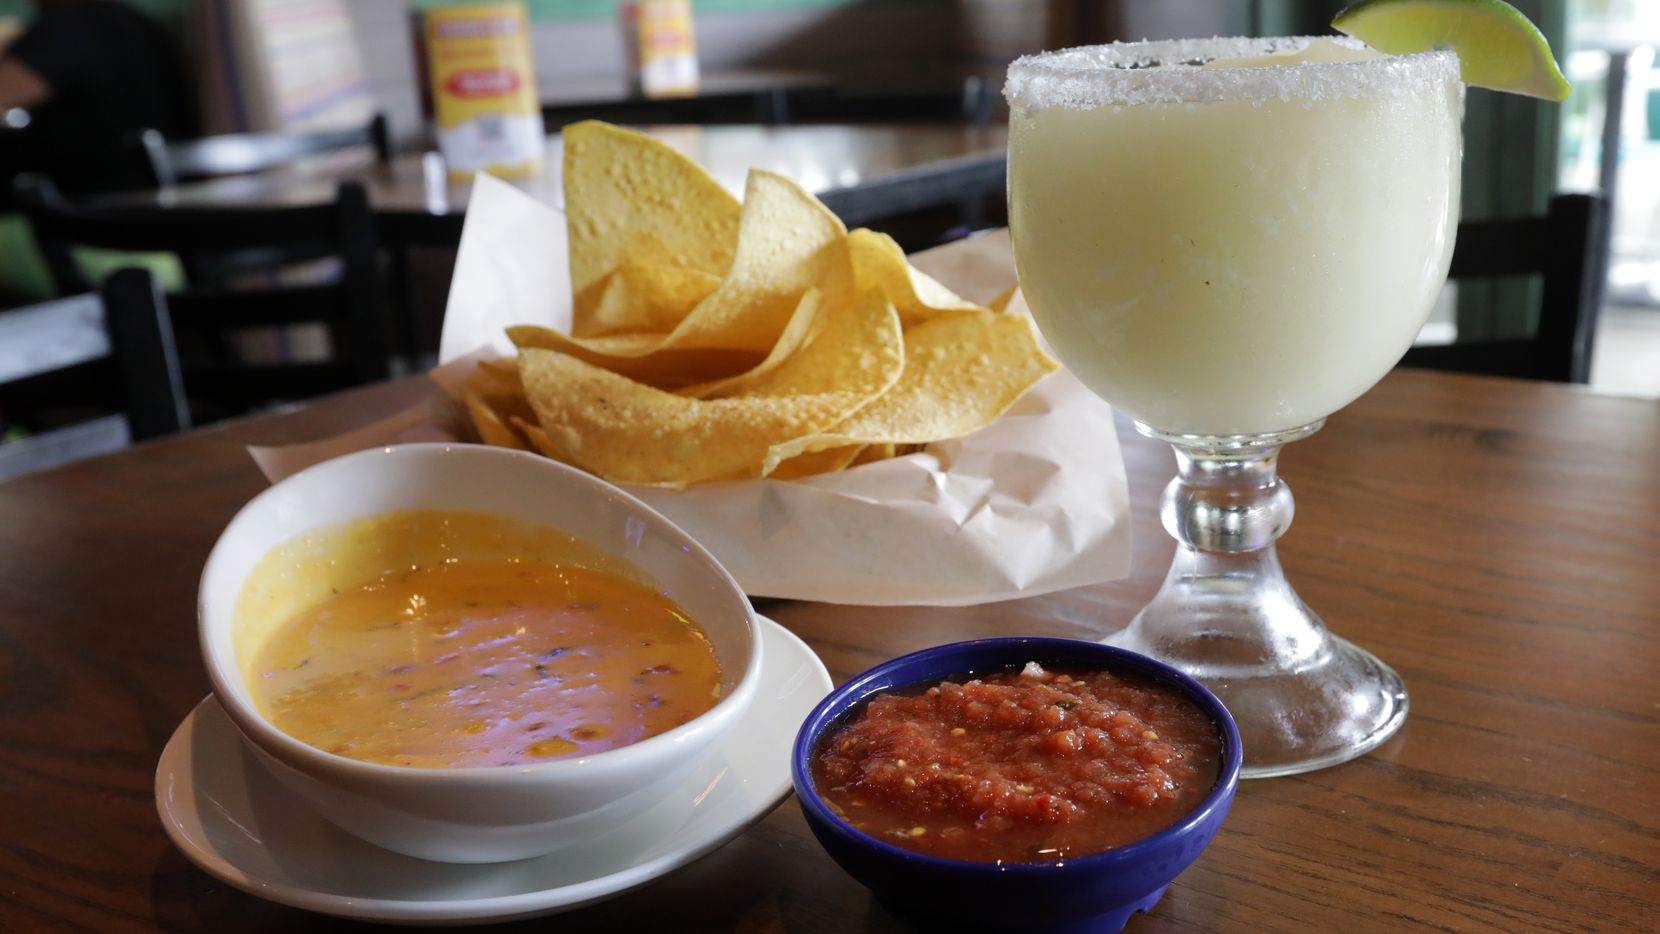 Queso is the most popular menu item at On the Border. For that reason, the Irving-based company has launched a program where fans can spend $1 and get free queso for a year.